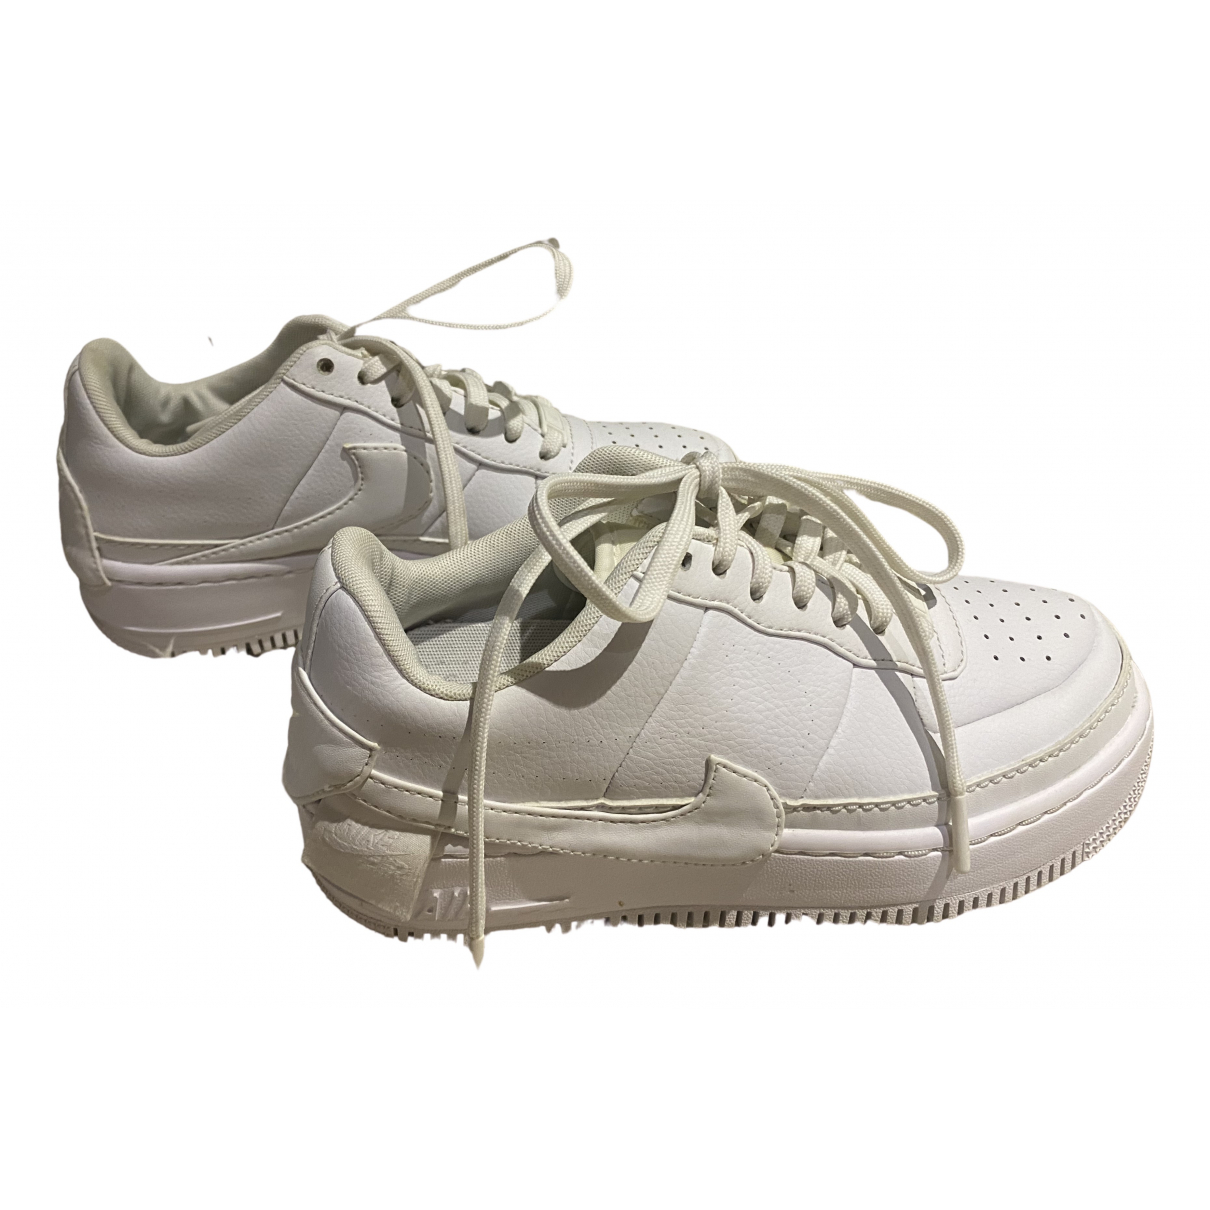 Nike Air Force 1 White Leather Trainers for Women 38 EU